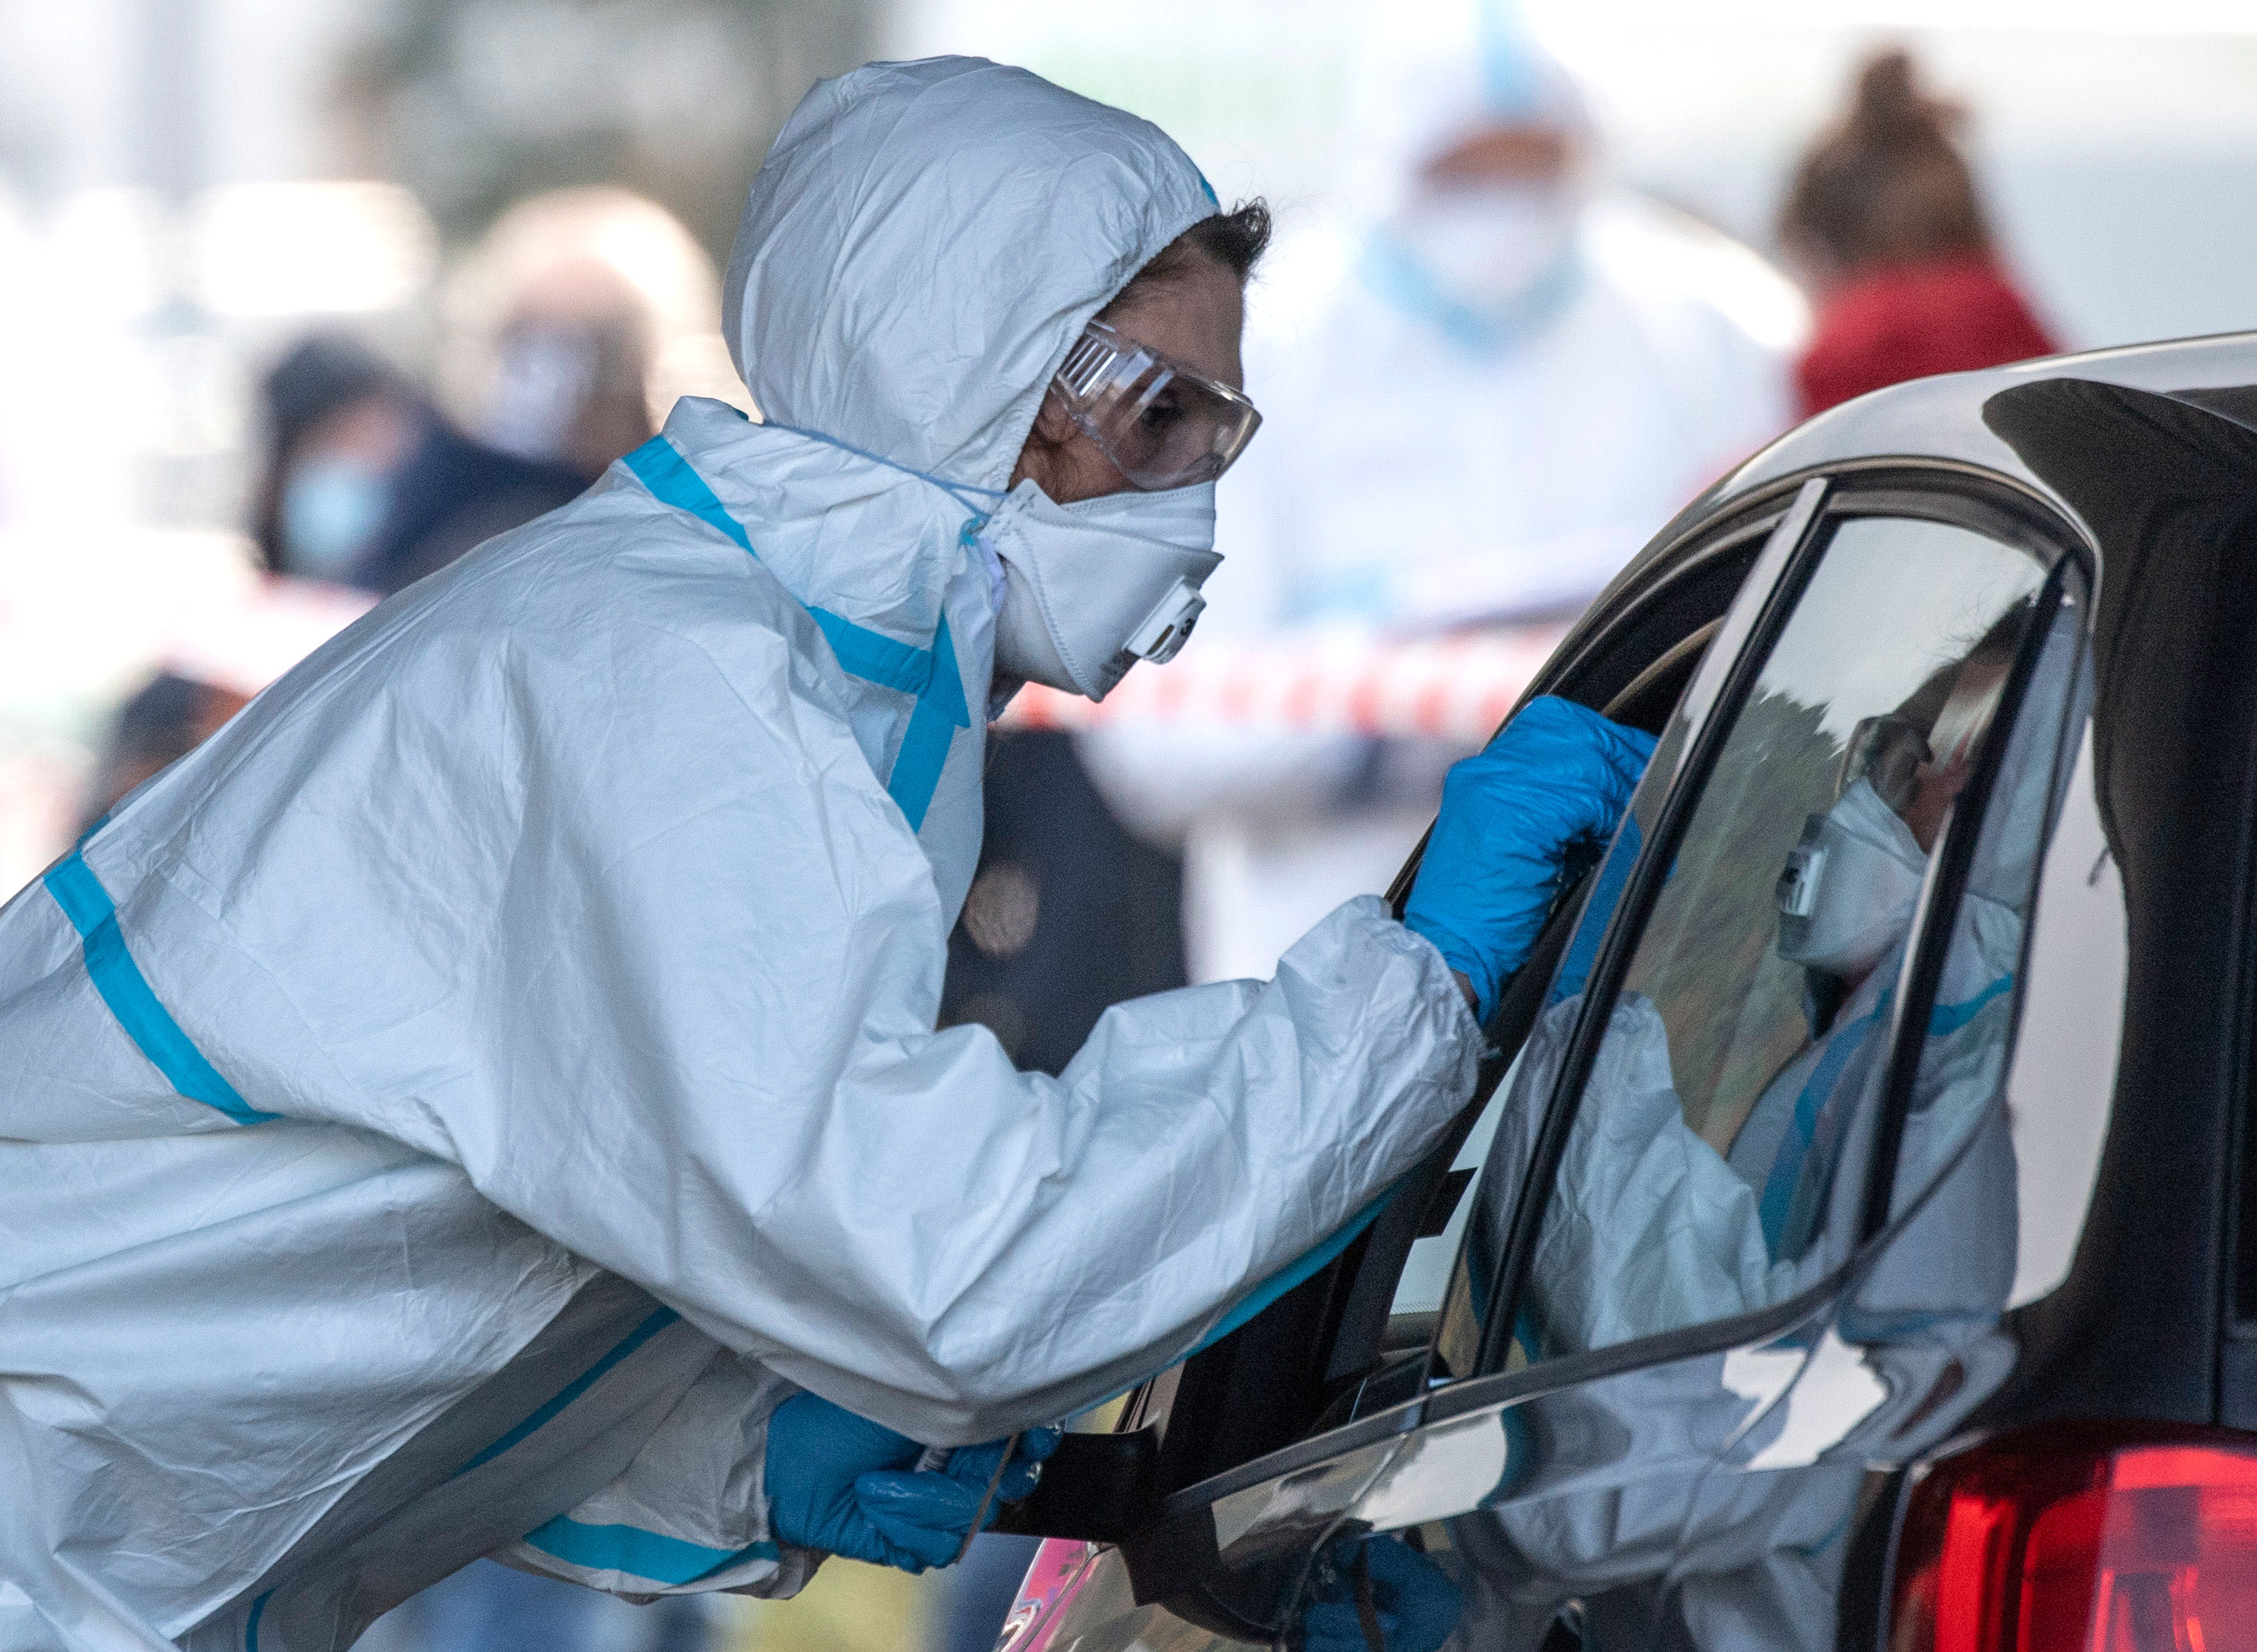 A worker administers Covid-19 tests at a drive-thru testing center in Marburg, Germany, on October 27.